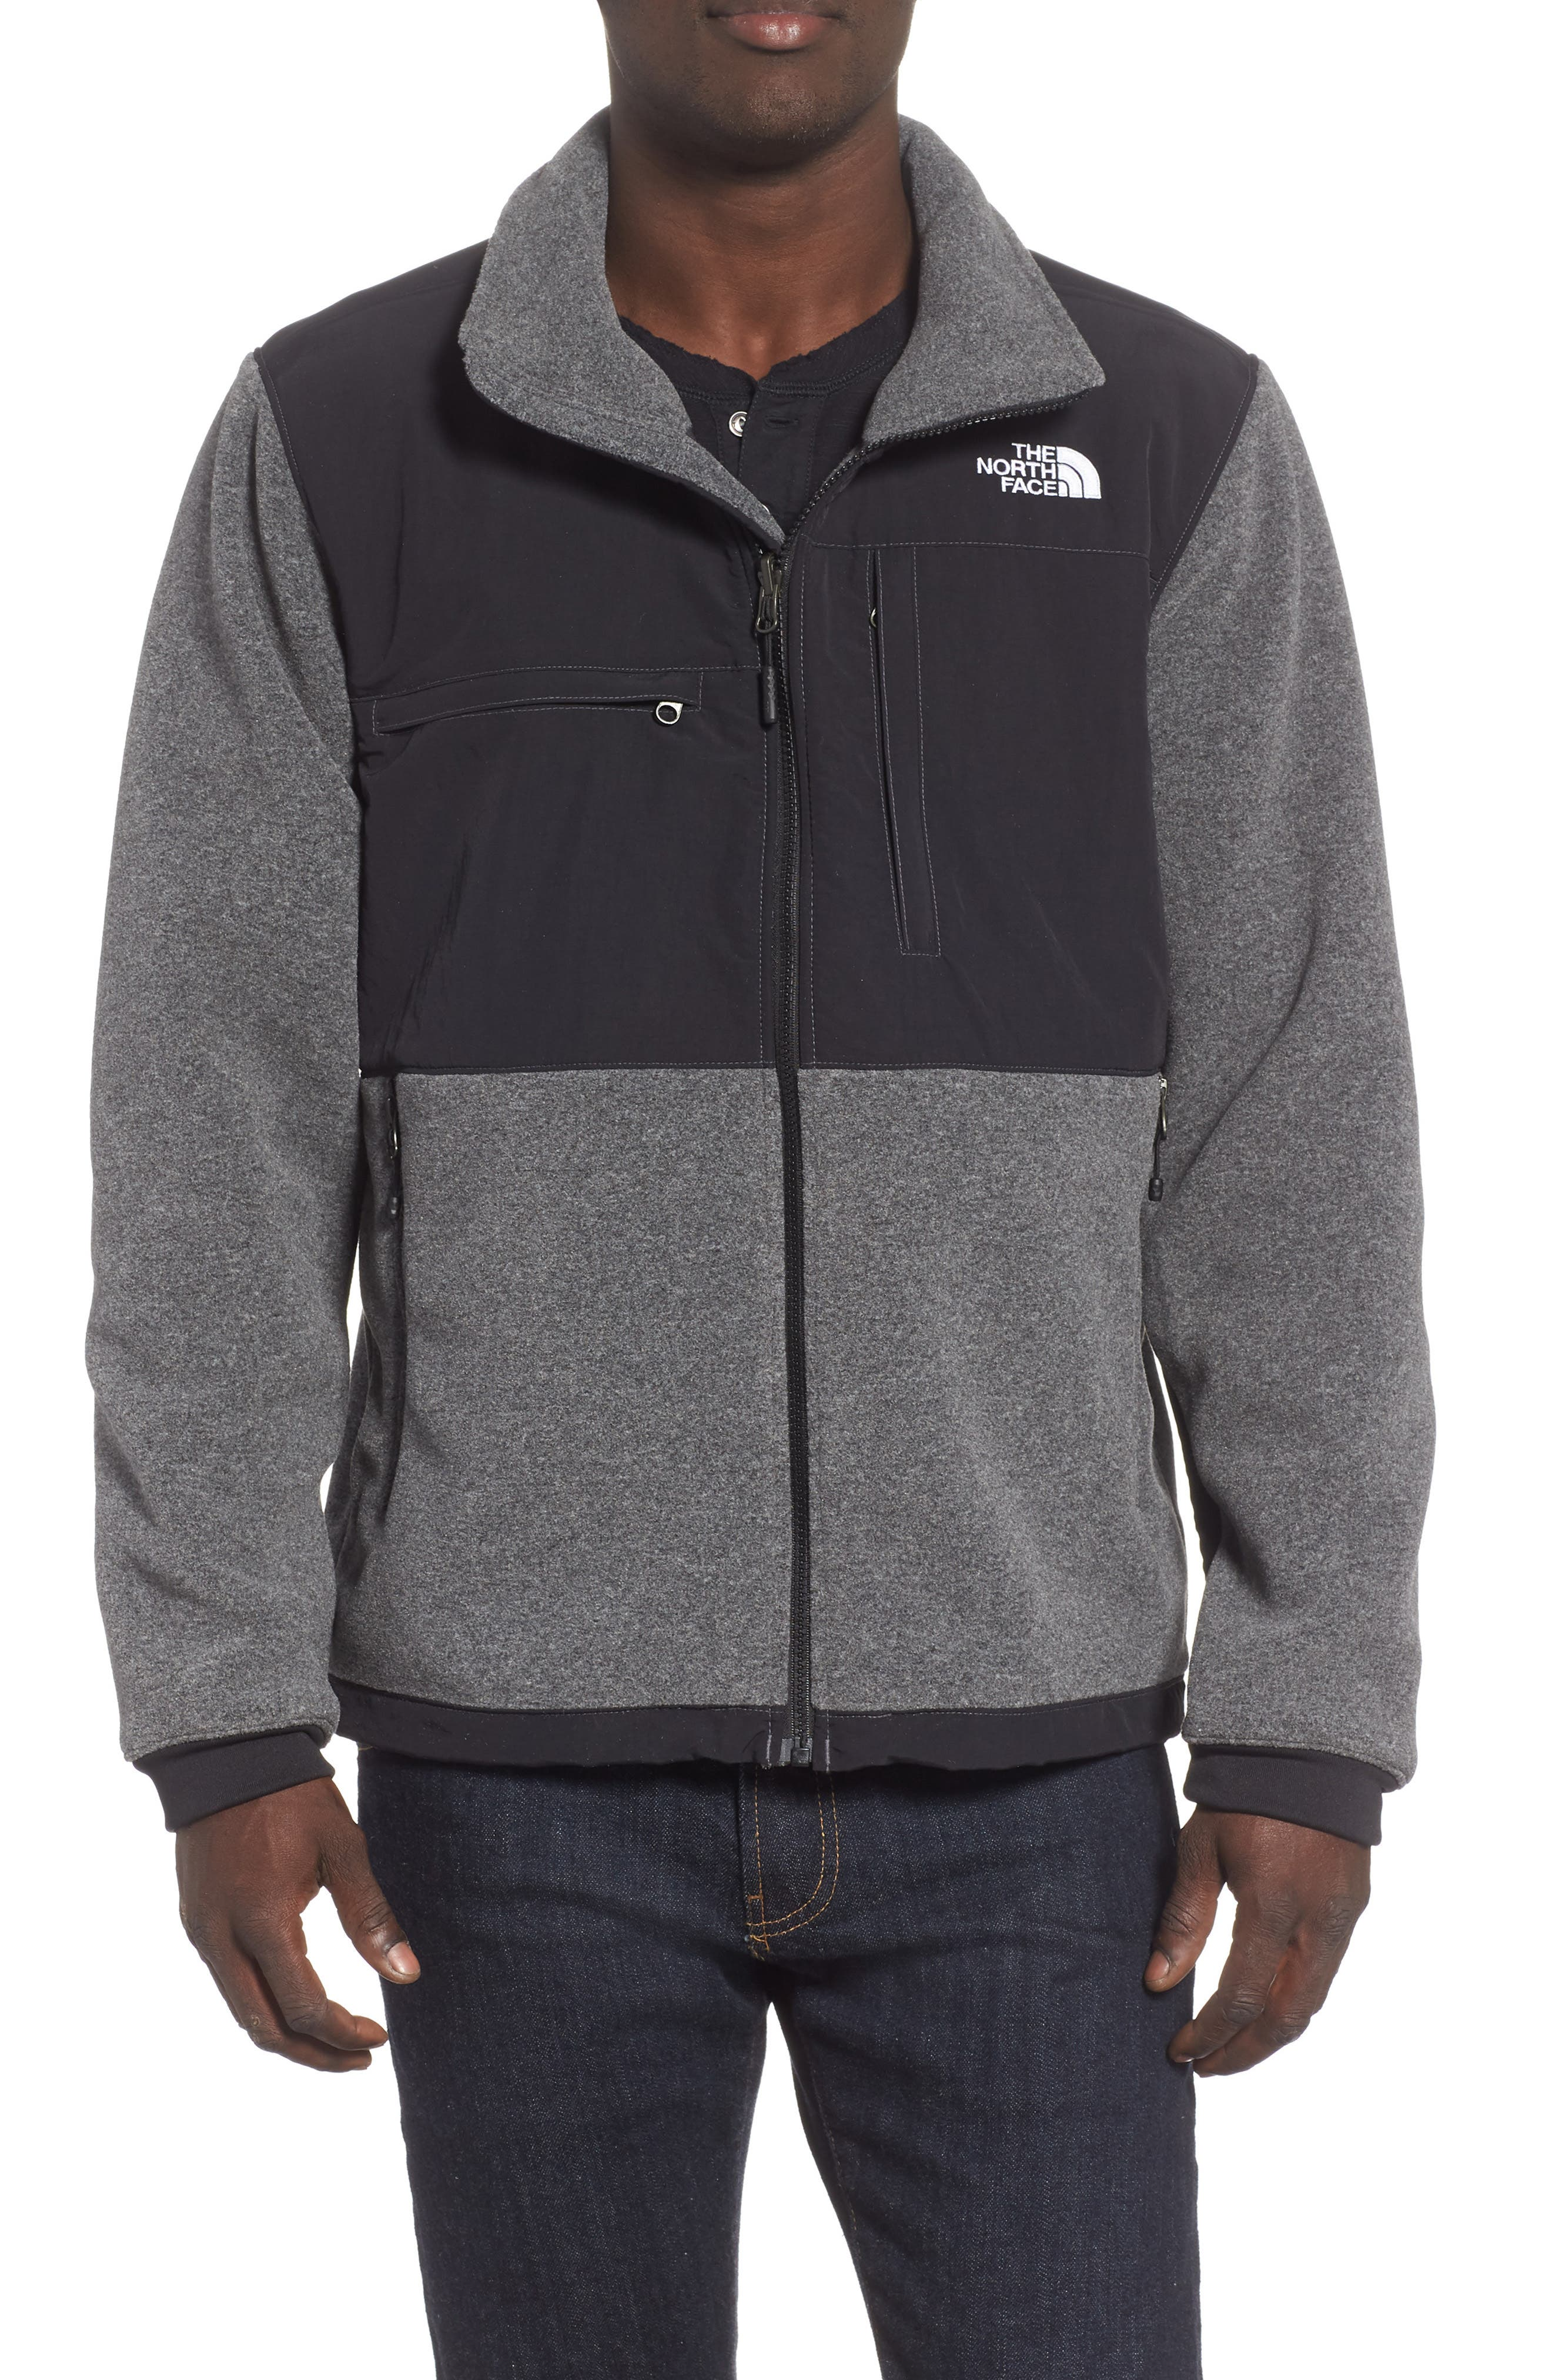 THE NORTH FACE,                             Denali 2 Jacket,                             Main thumbnail 1, color,                             RECYCLED CHARCOAL GREY HEATHER